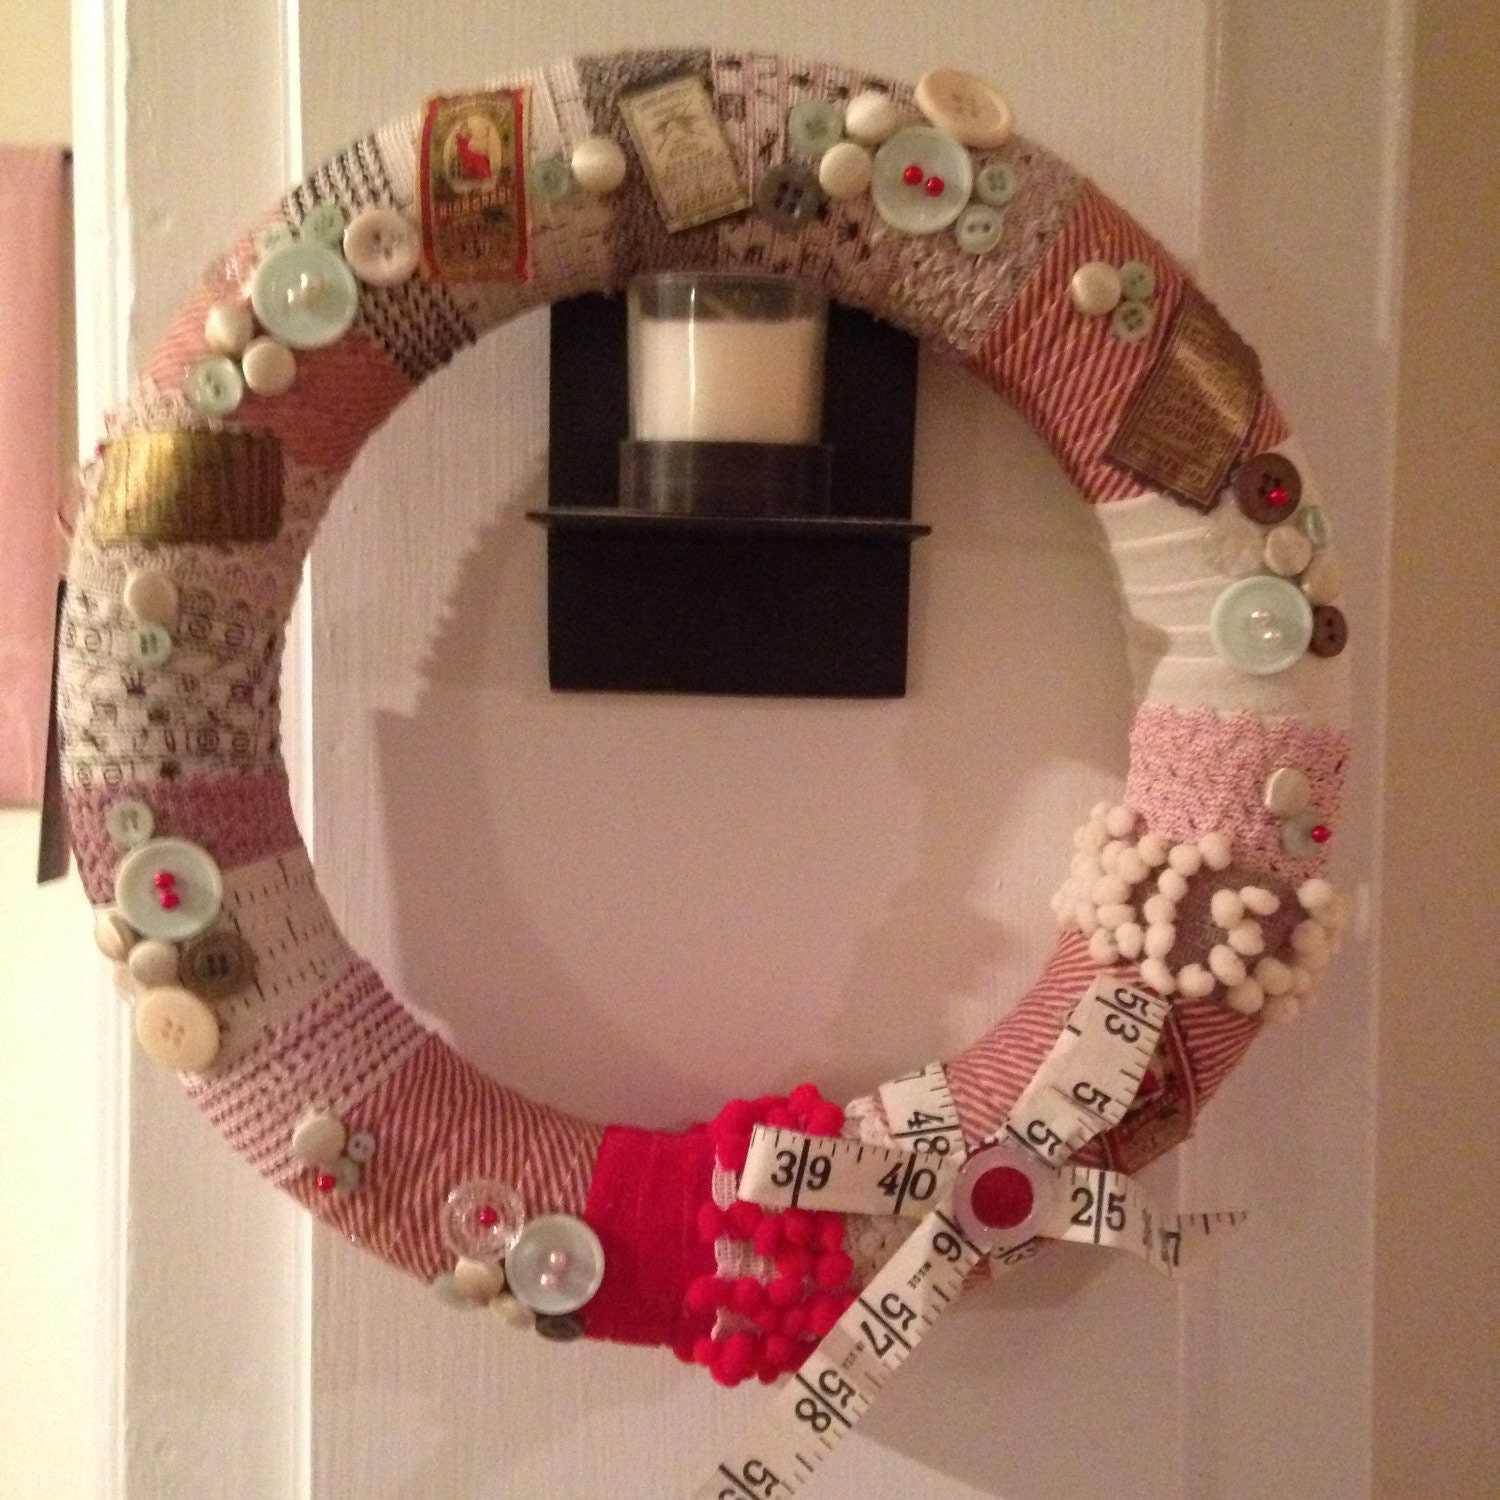 A Stitch in Time: Sewing-Themed Wreath